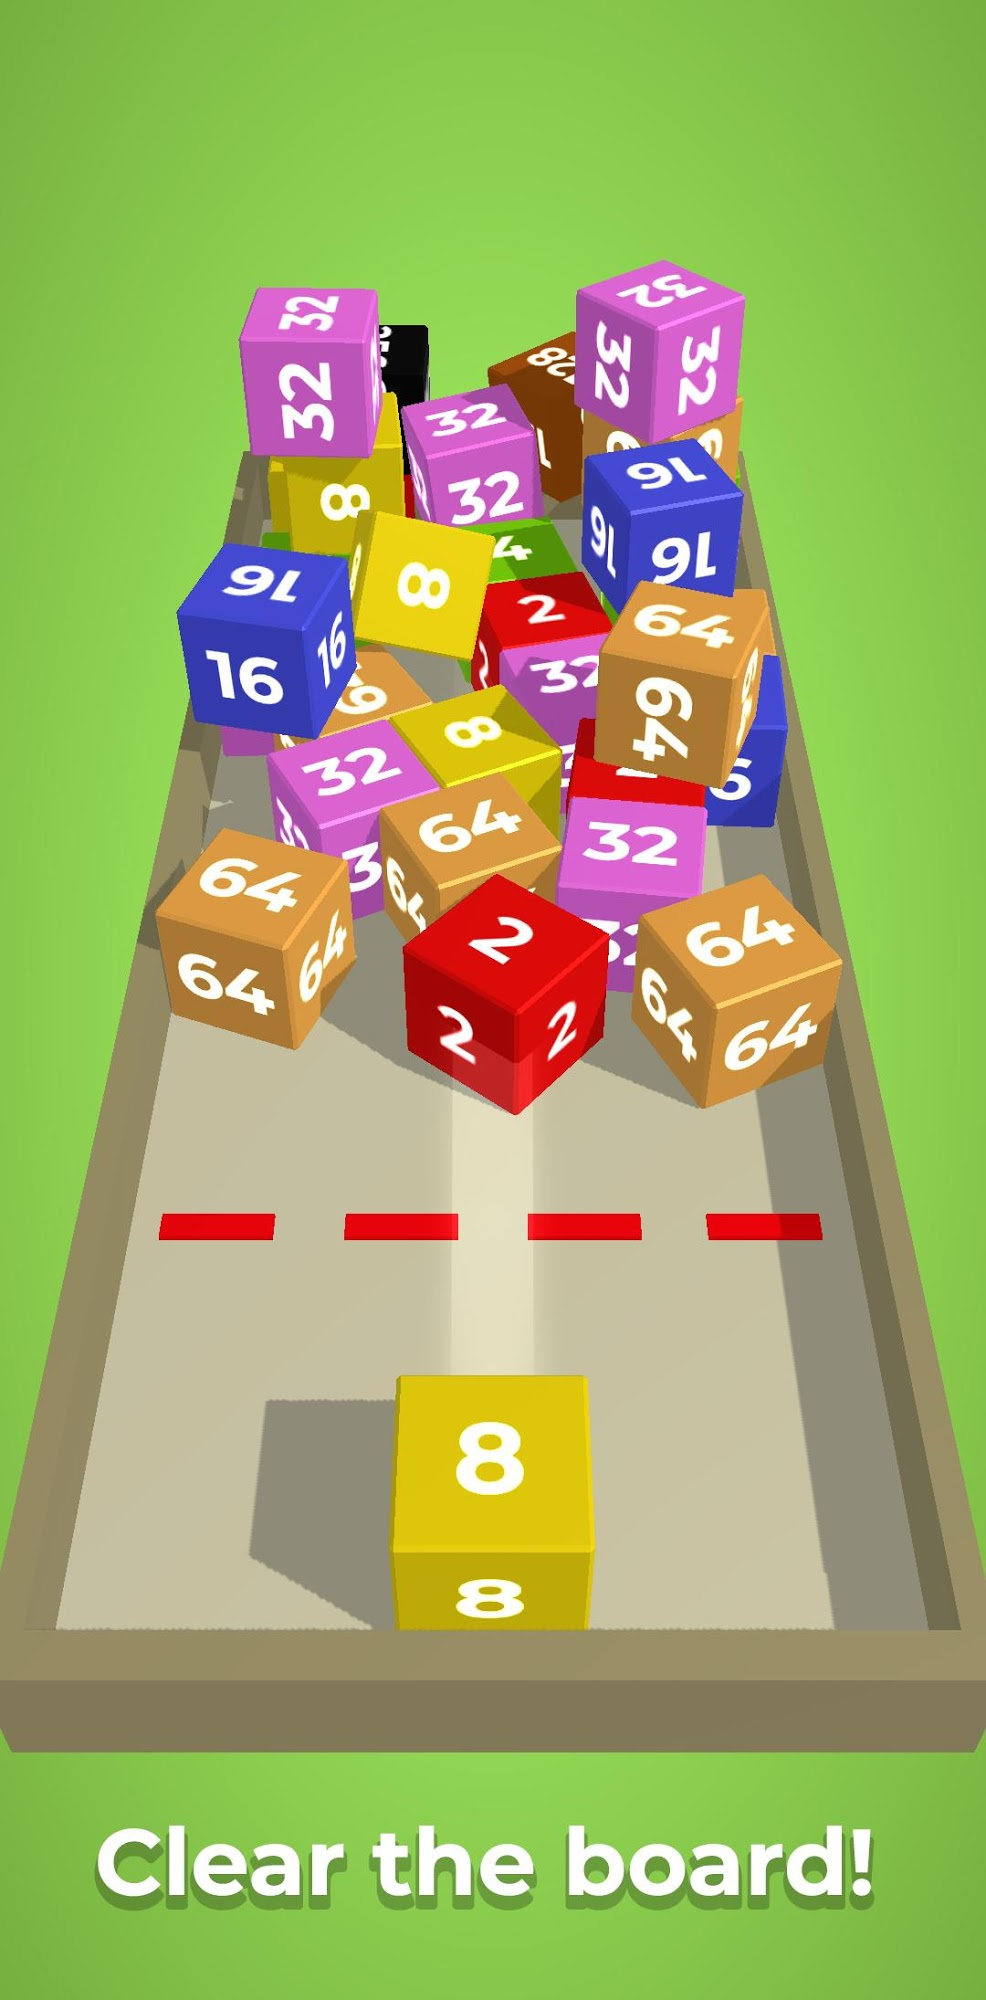 Chain Cube: 2048 3D merge game for Android